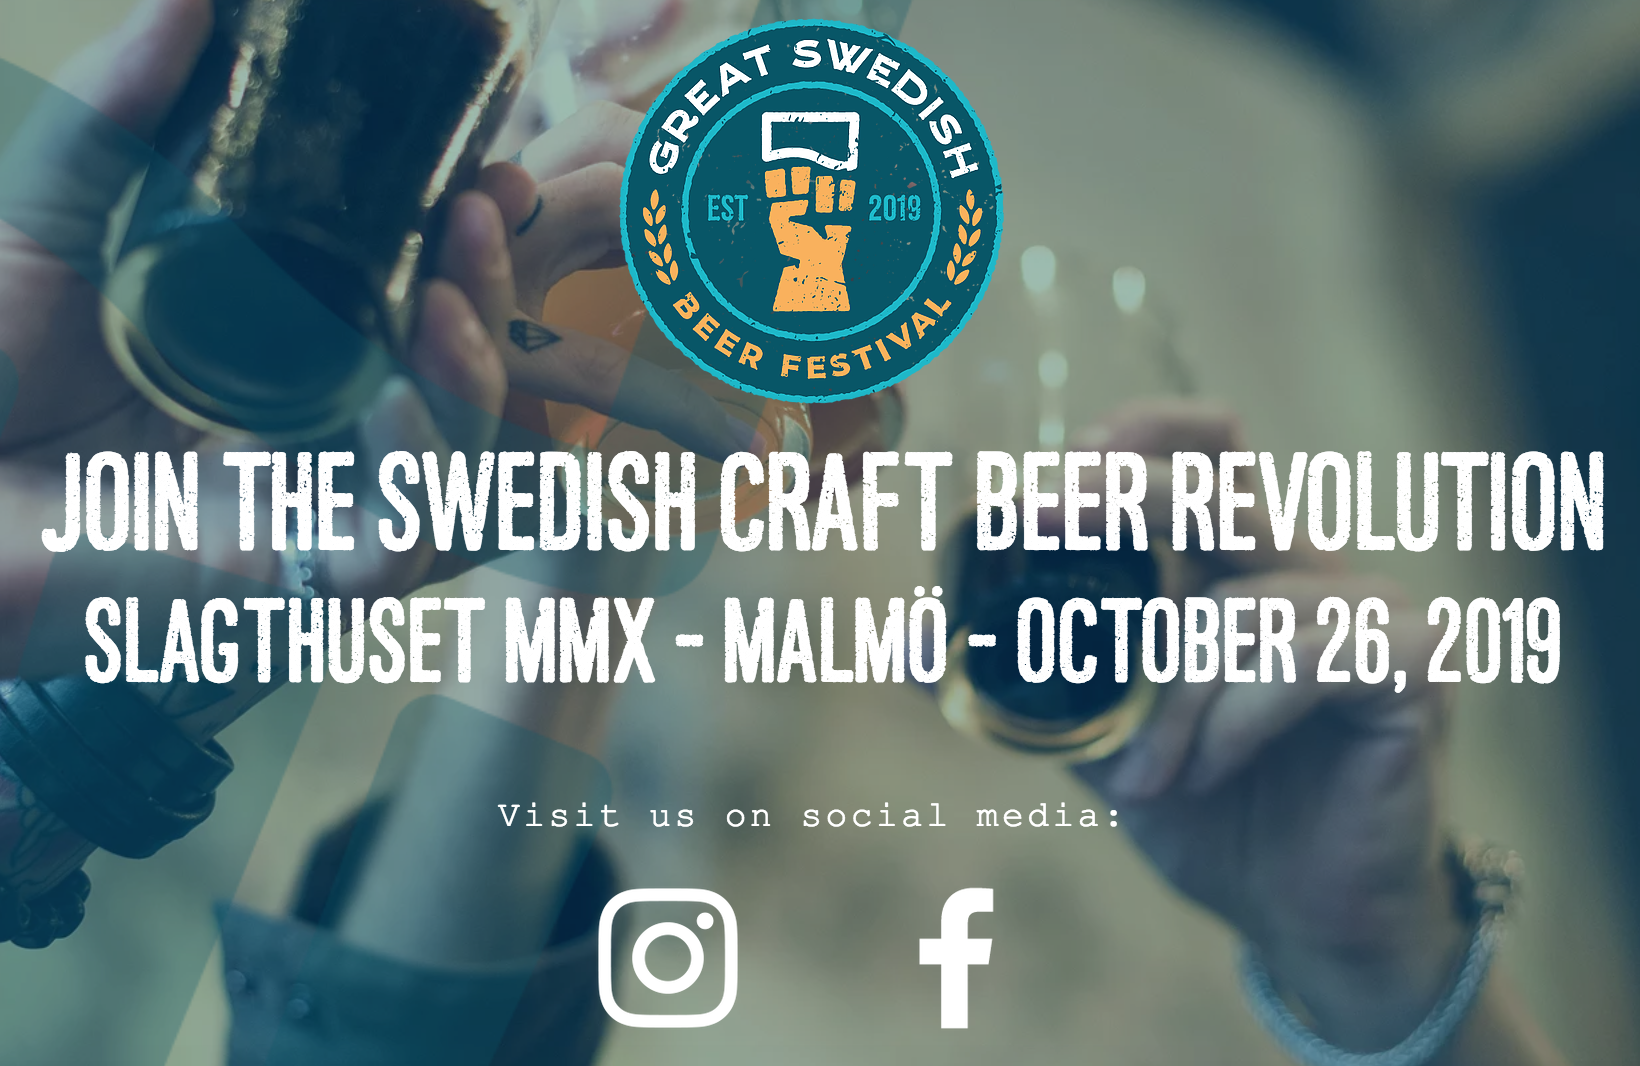 Great Swedish Beer Festival.